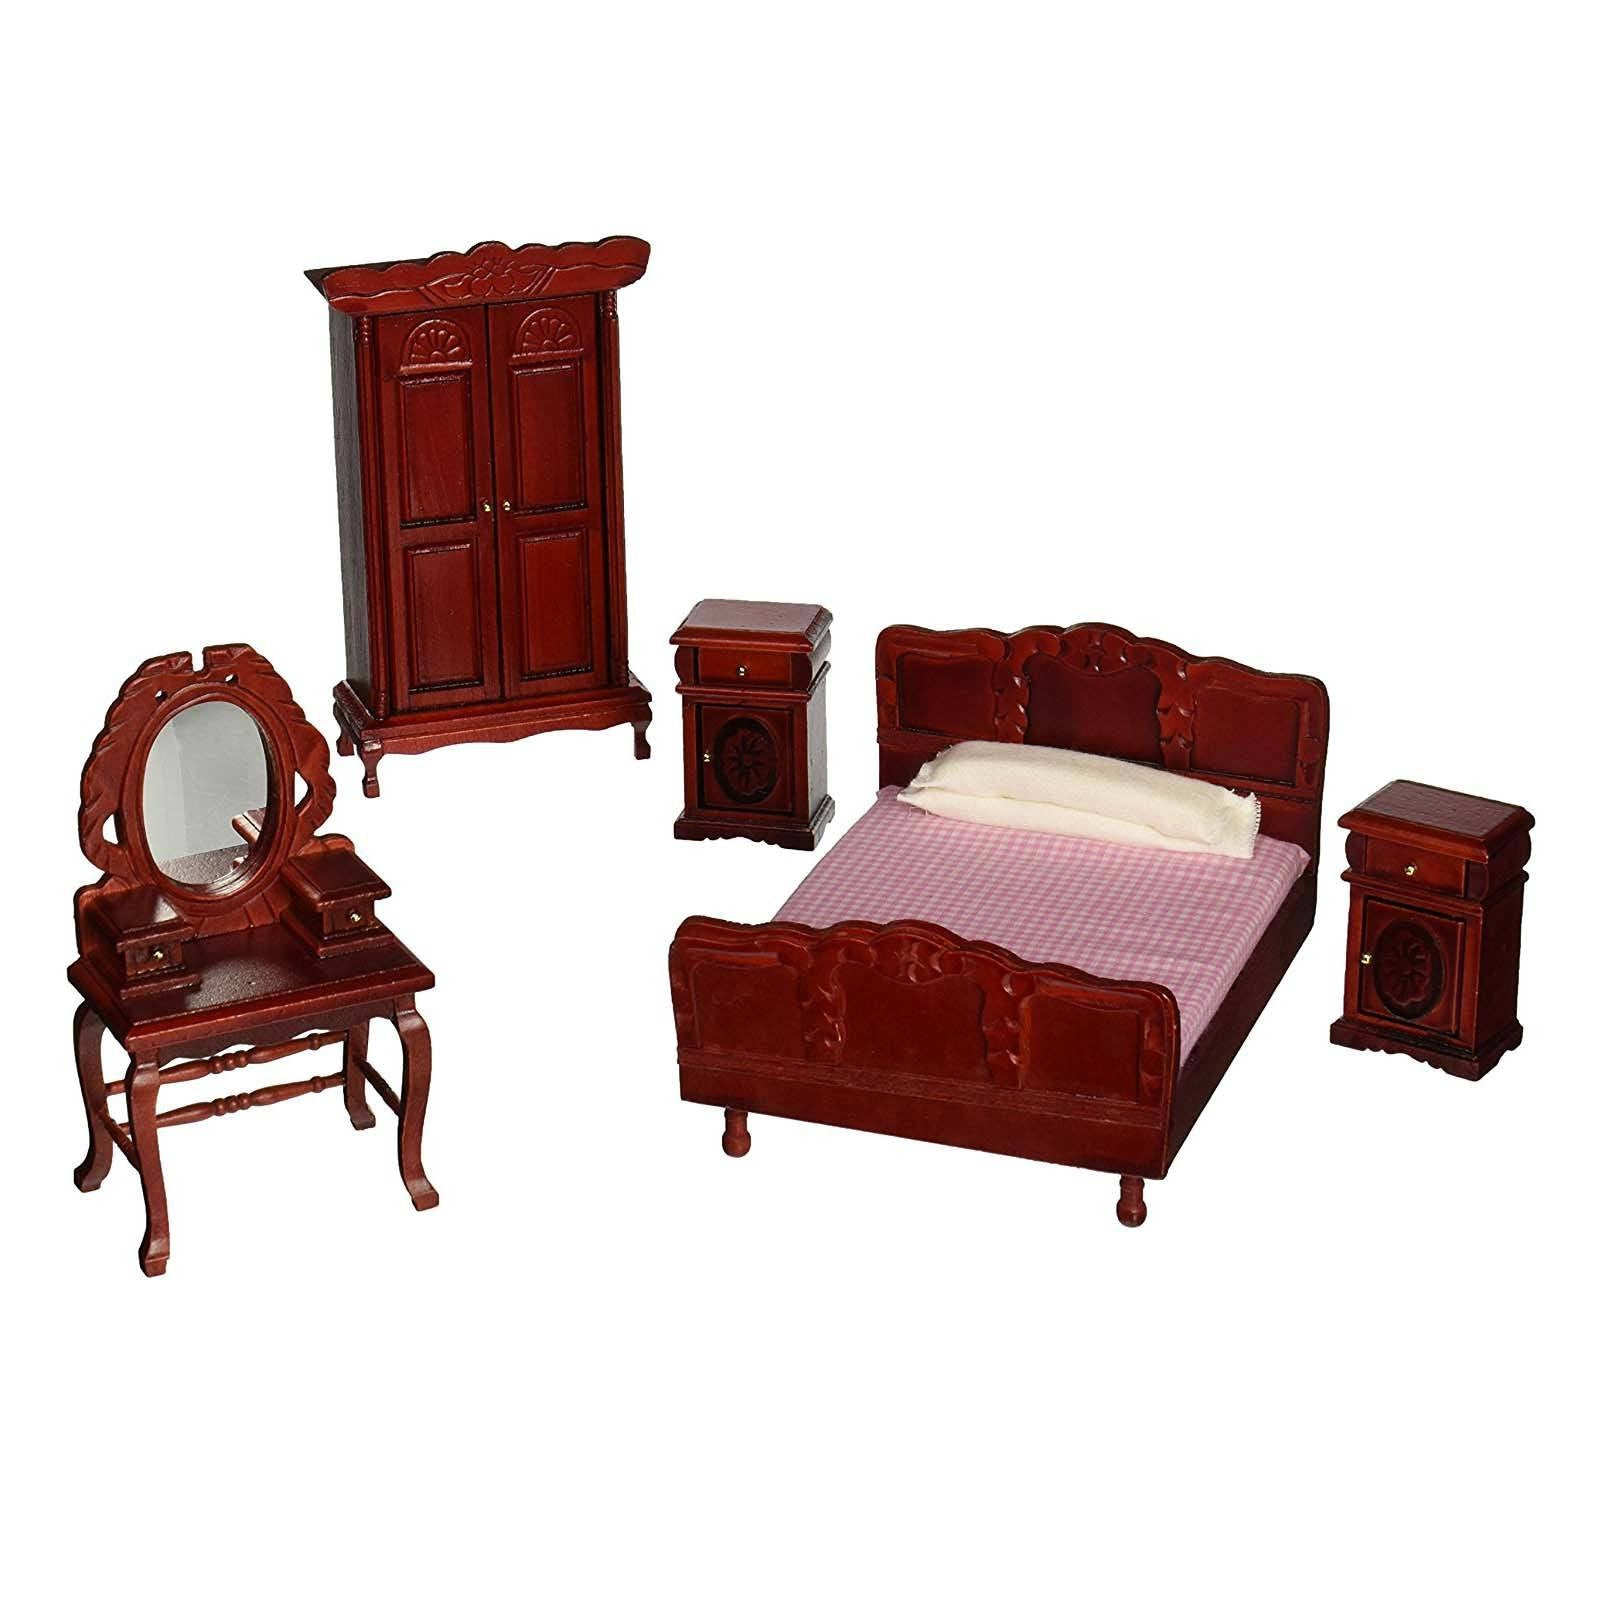 dollhouse furniture cheap. Melissa And Doug Doll House Furniture Bedroom Set Dollhouse Cheap L